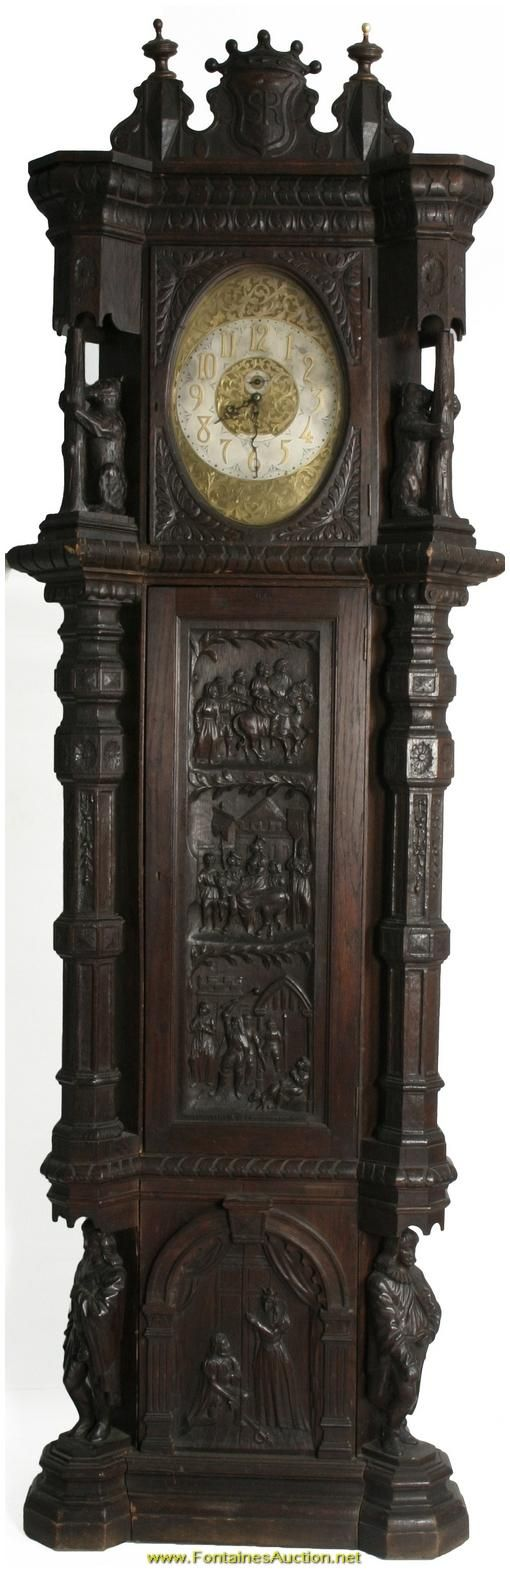 Elite English Oak Grandfather Clock